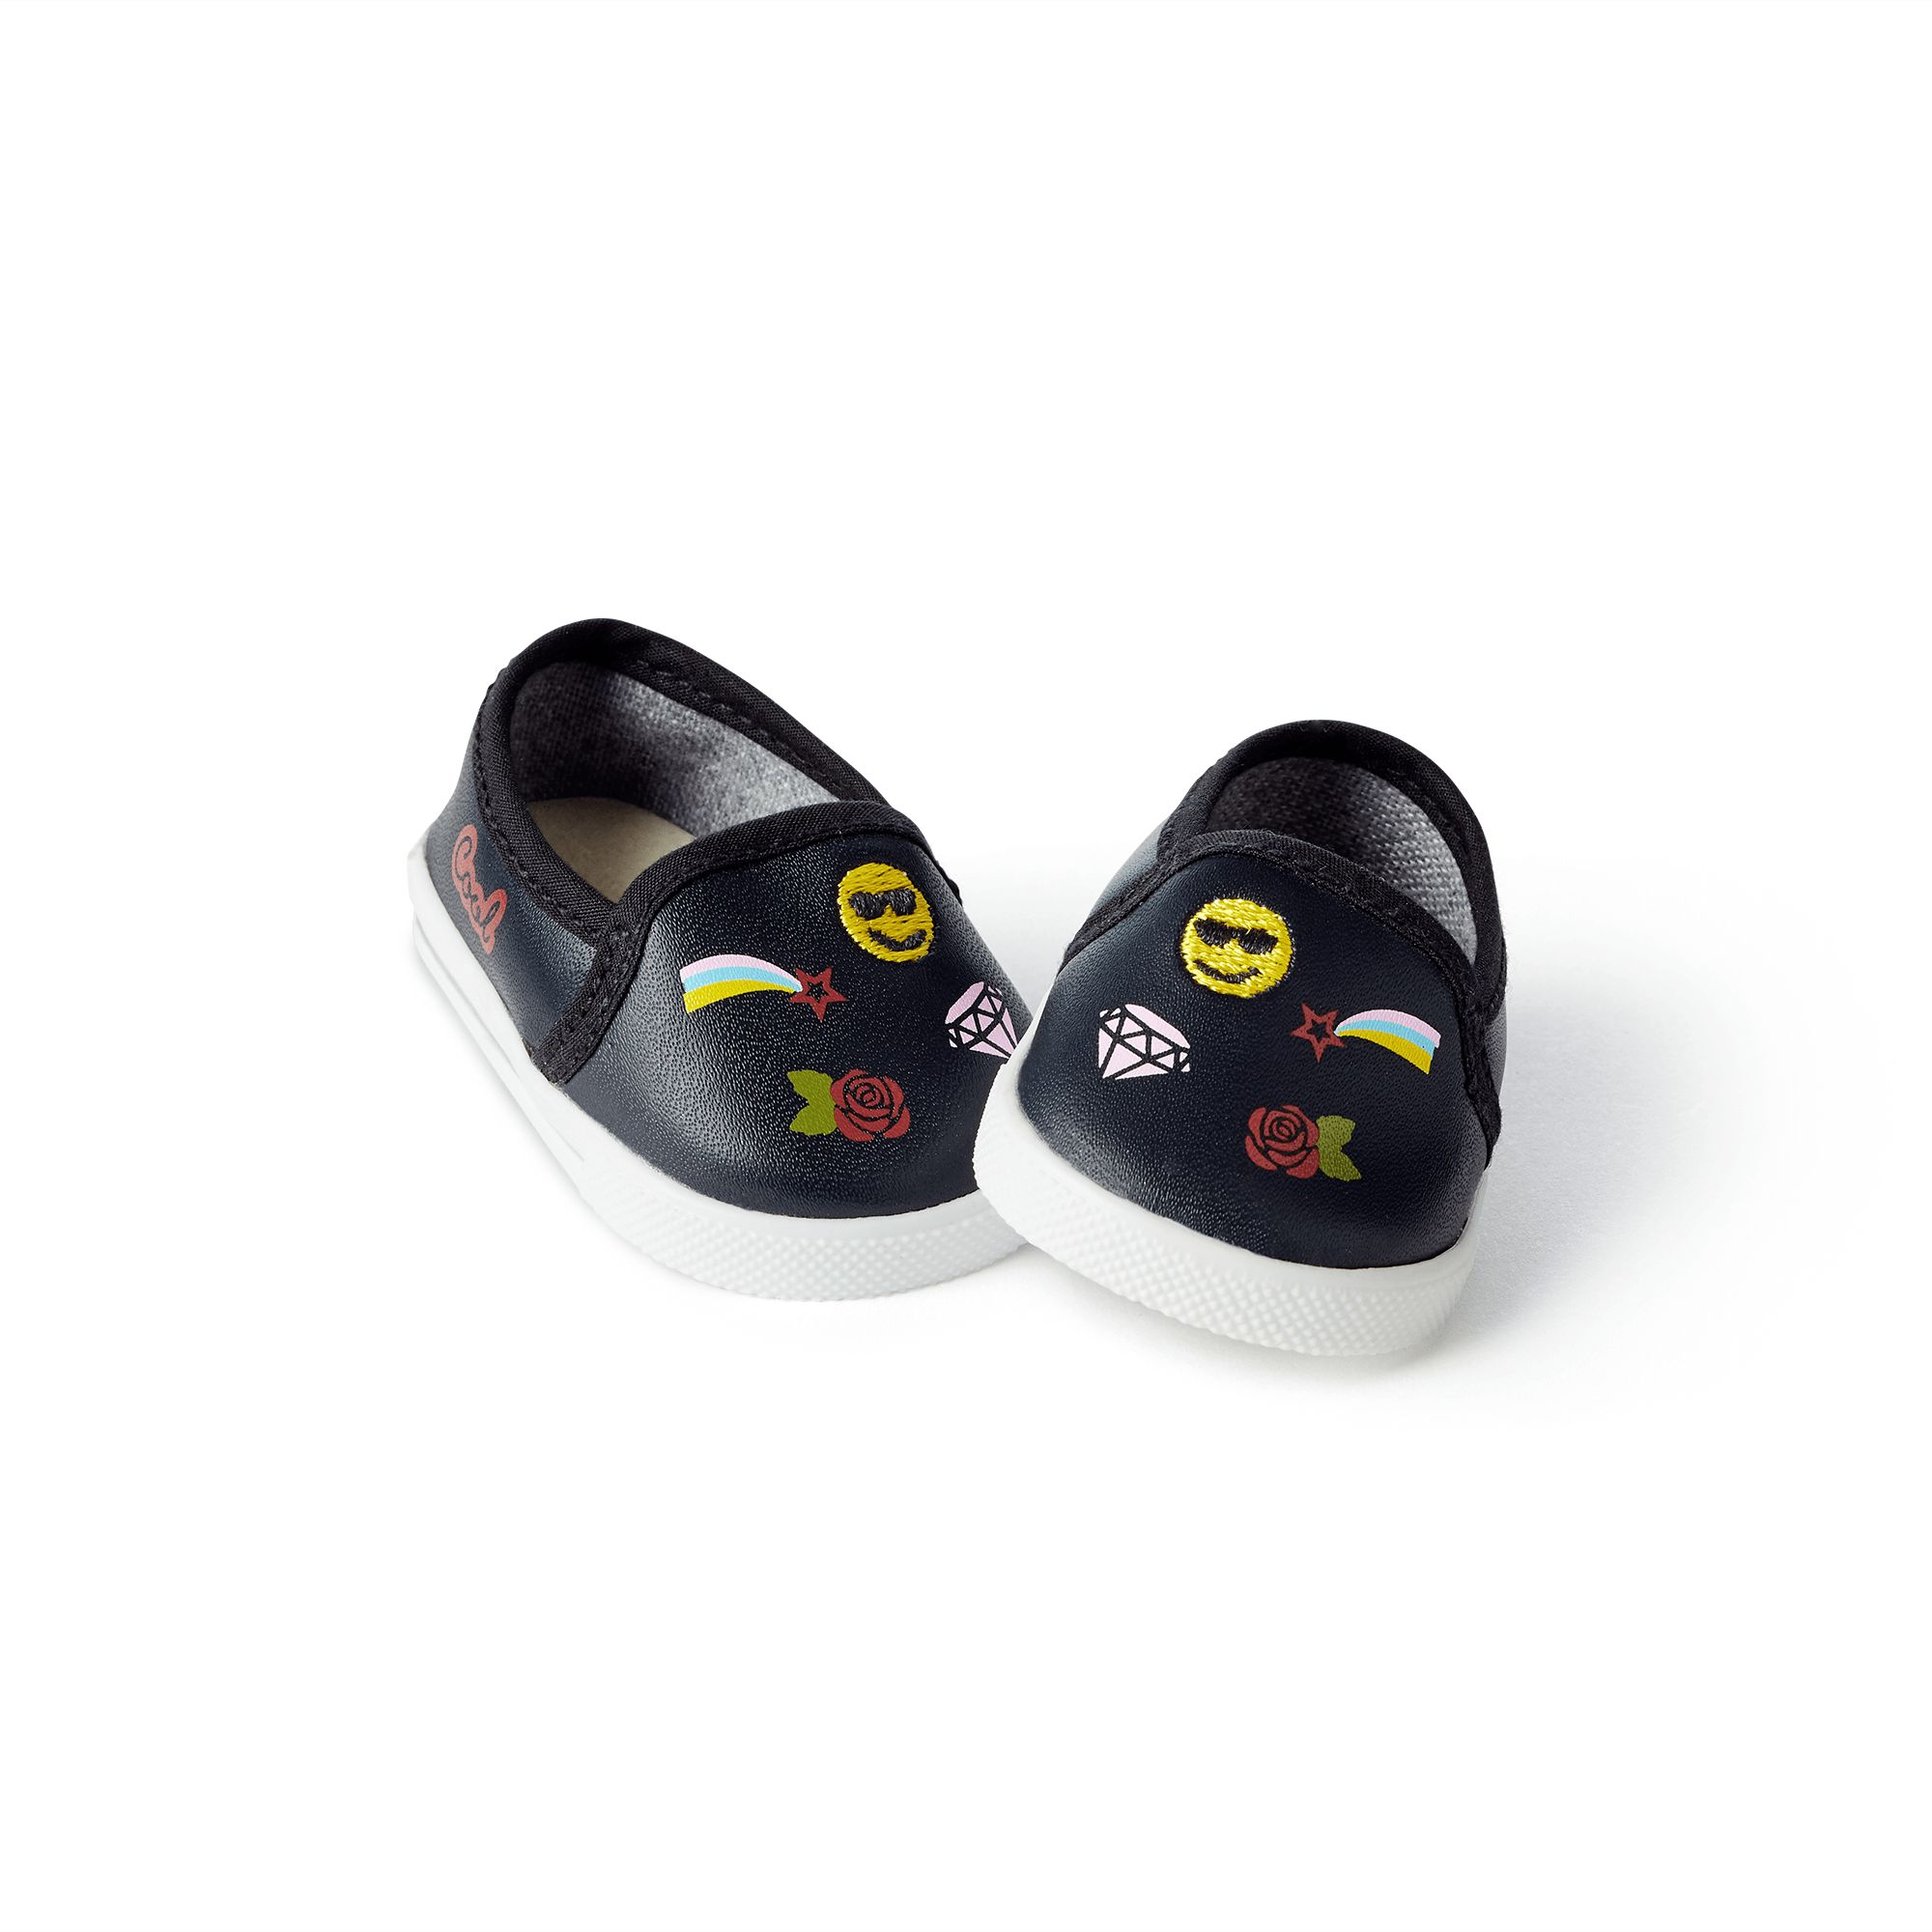 Cool Expressions Shoes